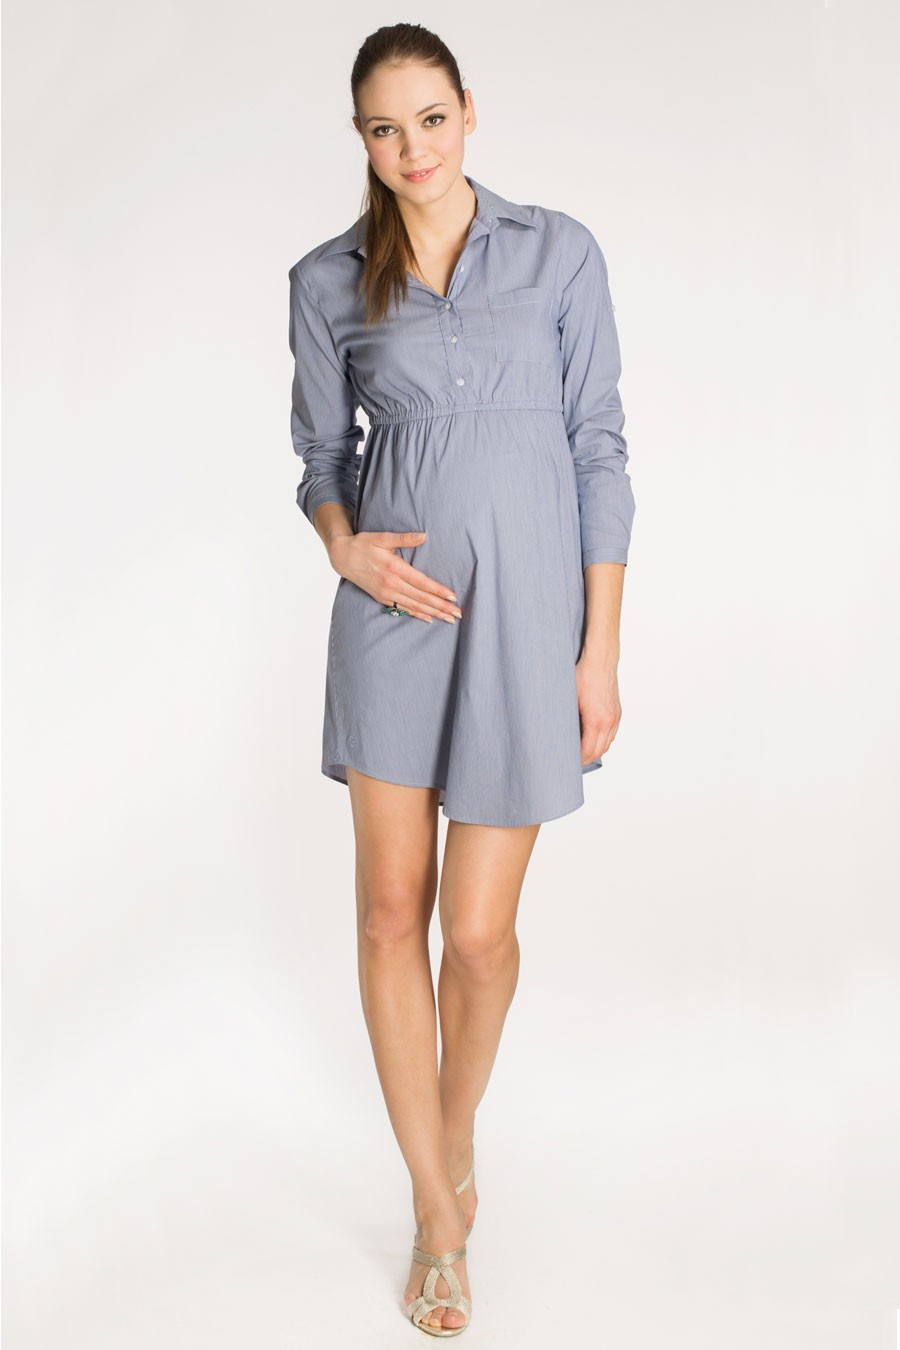 BALI Cotton Shirt Dress